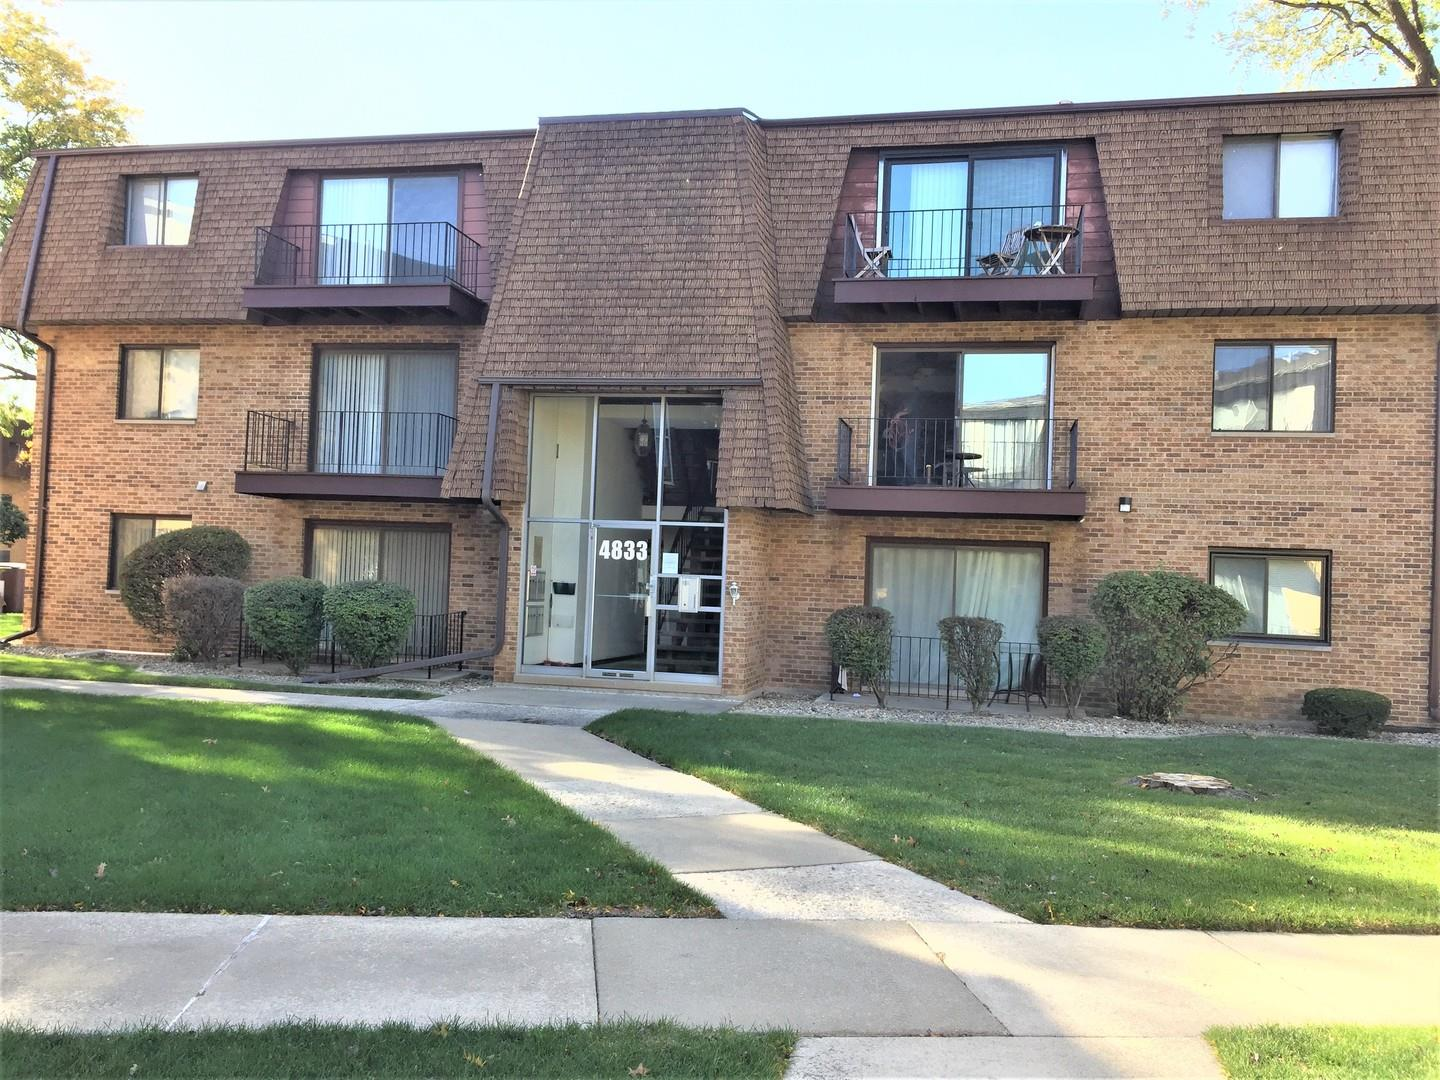 4833 W 109th Street #202, Oak Lawn, IL 60453 - #: 10904384